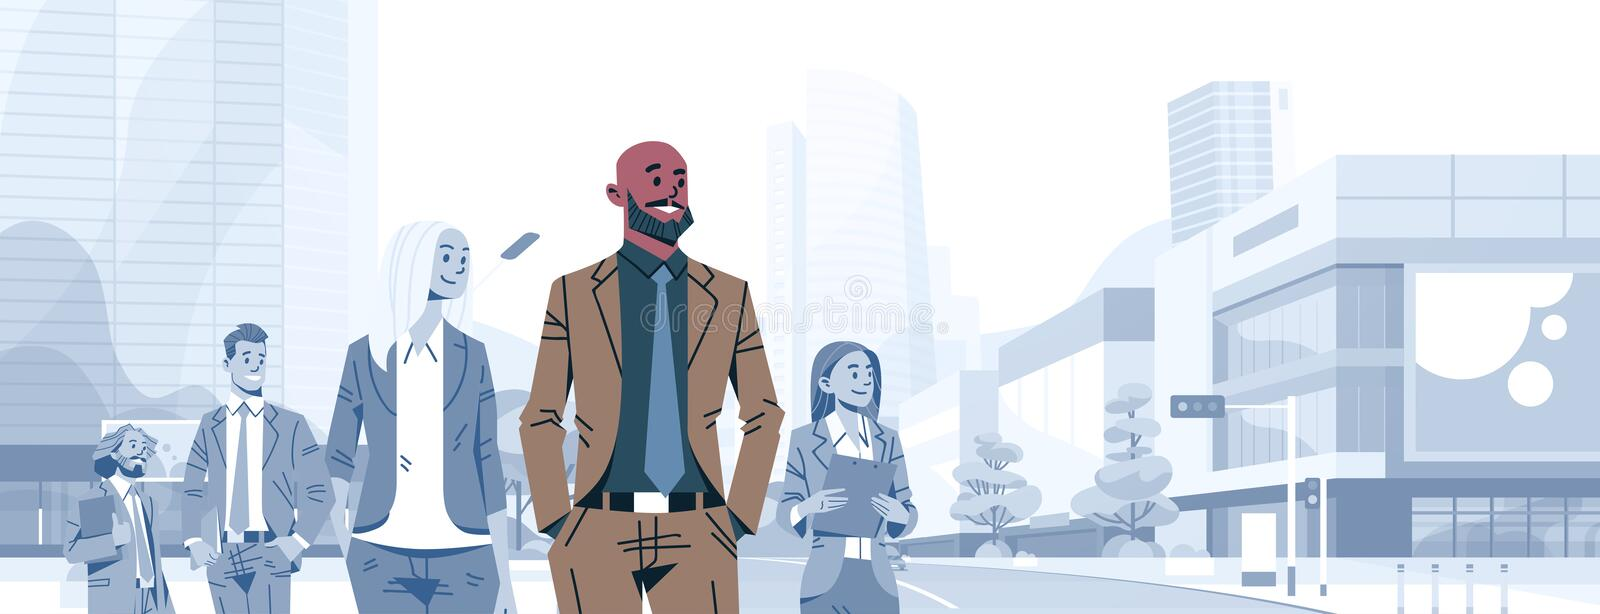 Bald head businessman team leader boss stand out business people group individual leadership concept male cartoon. Character portrait cityscape background vector illustration